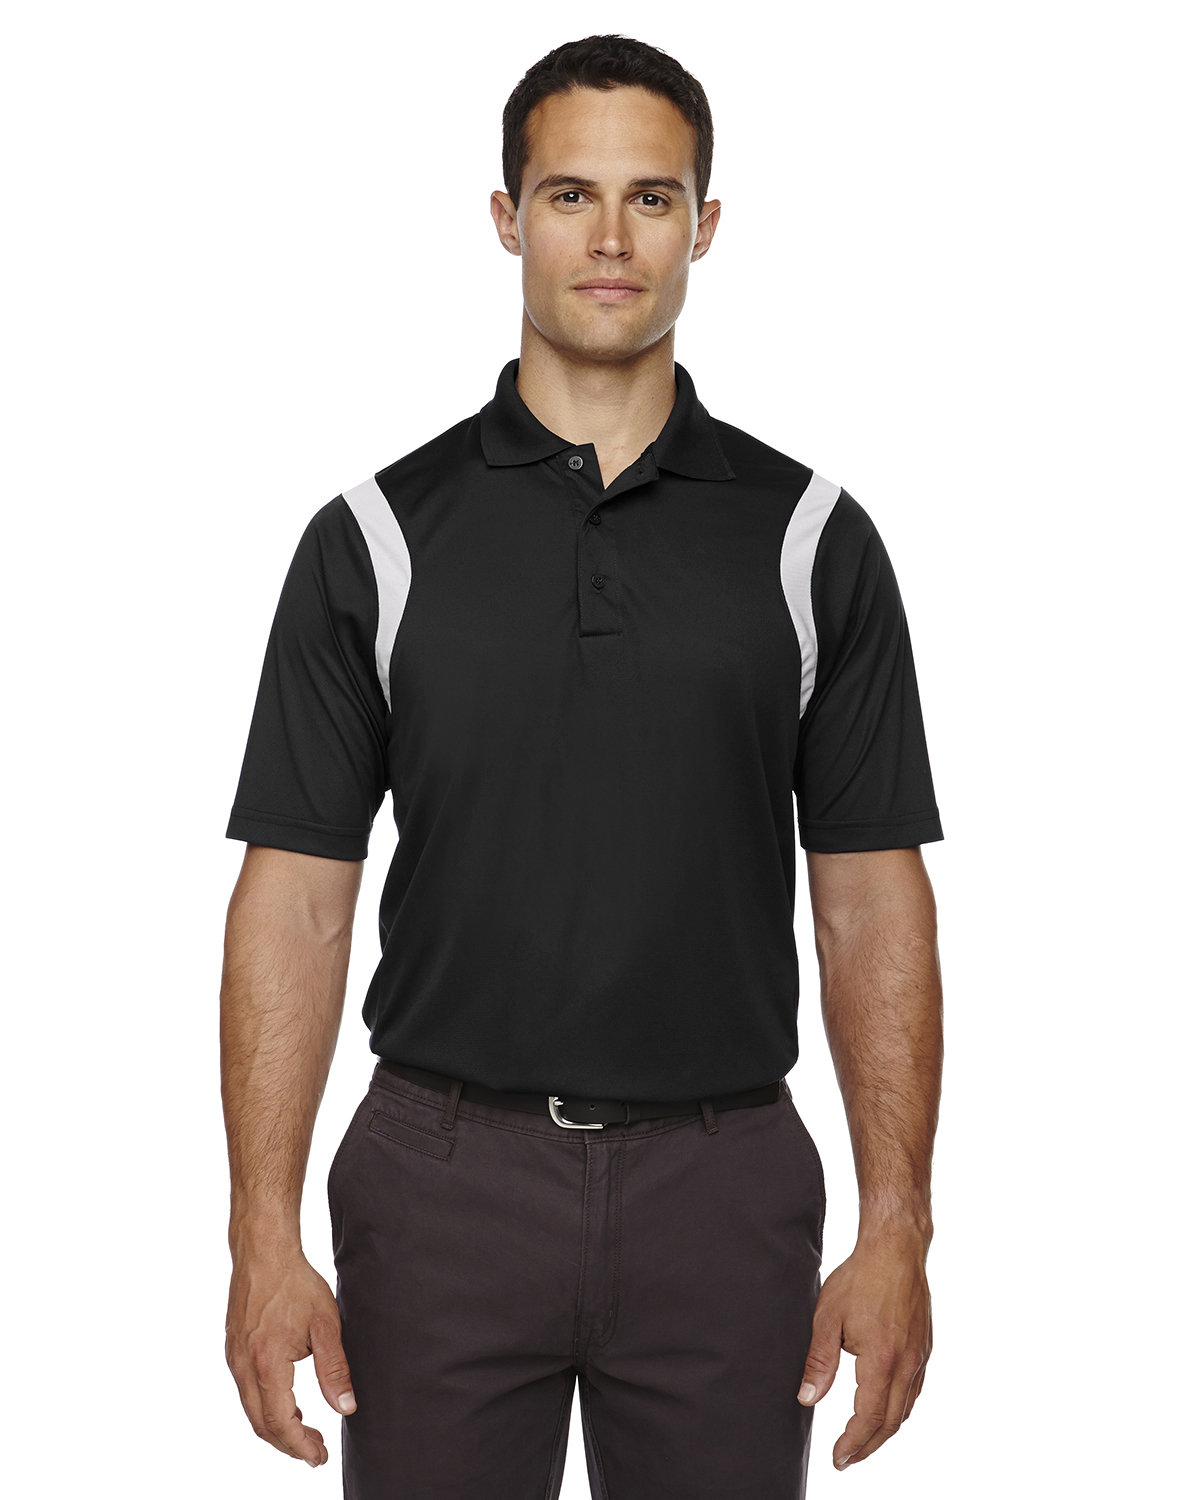 Extreme Men's Eperformance™ Venture Snag Protection Polo BLACK